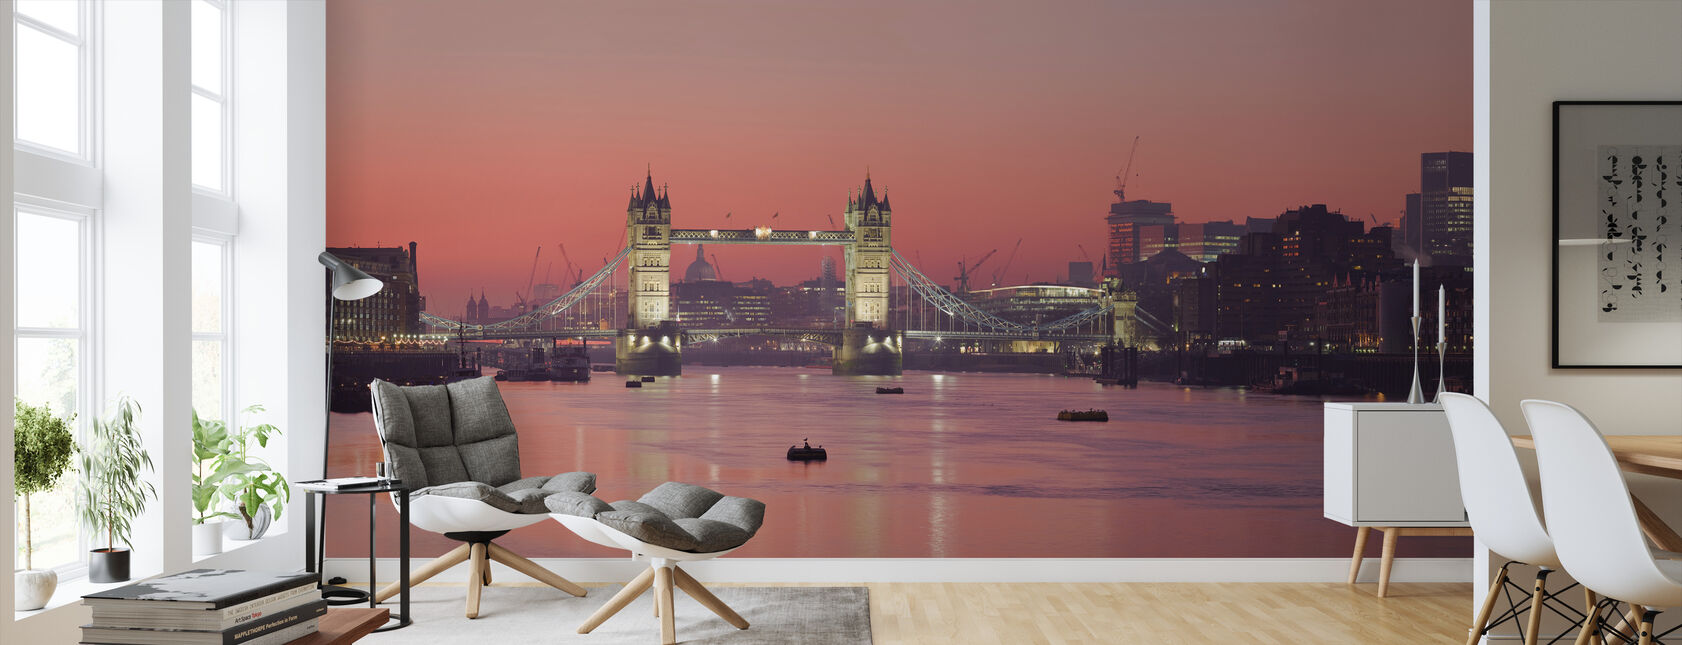 London Skyline en Sunset - Tapet - Stue